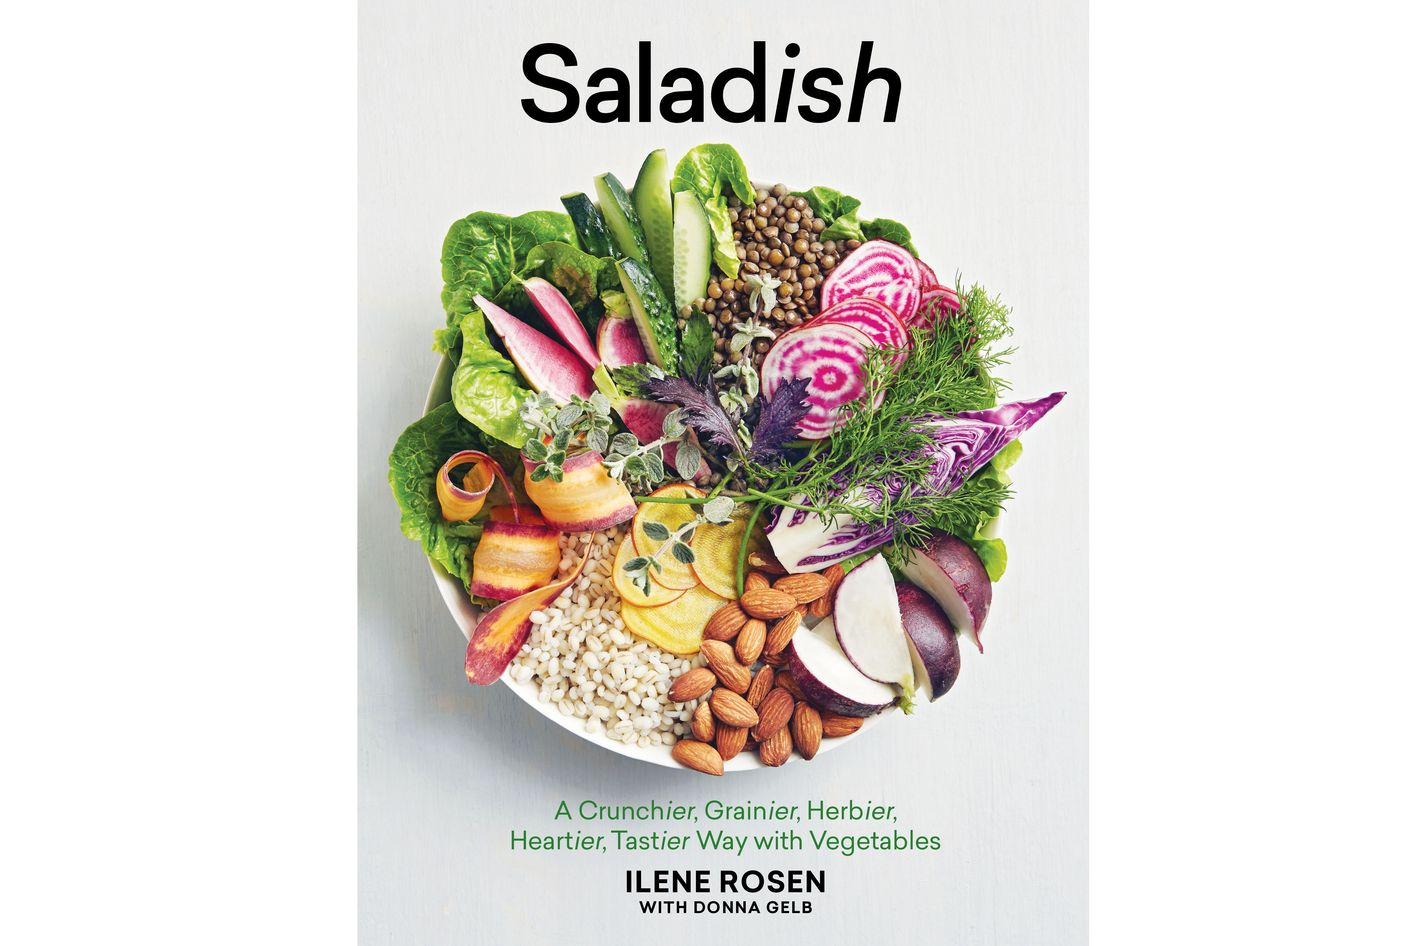 Saladish: A Crunchier, Grainier, Herbier, Heartier, Tastier Way With Vegetables